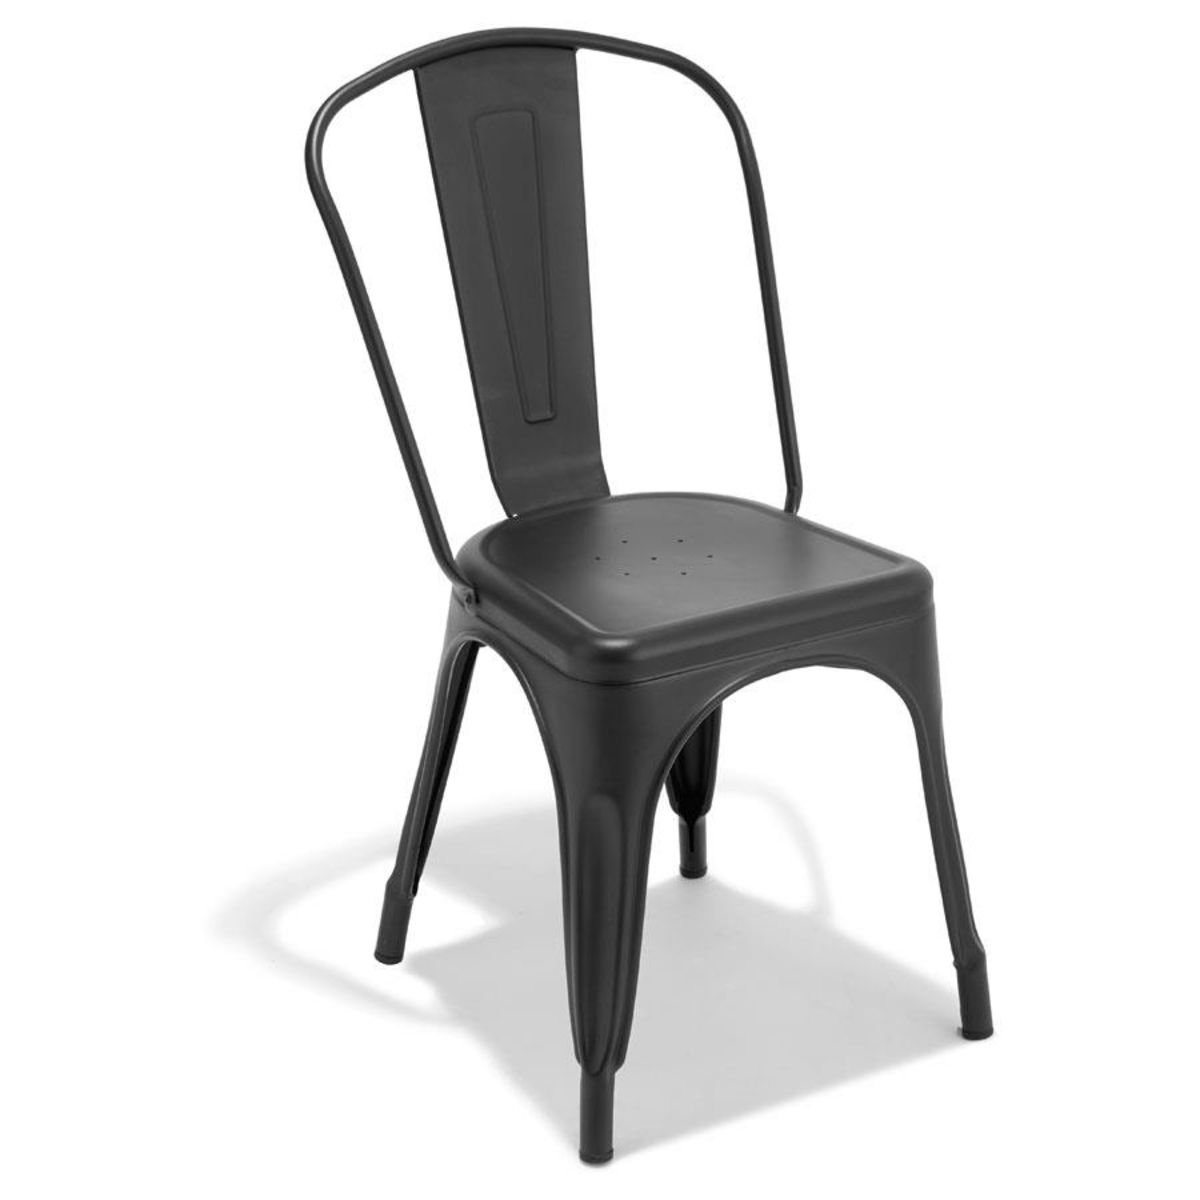 Top Kmart Steel Chair